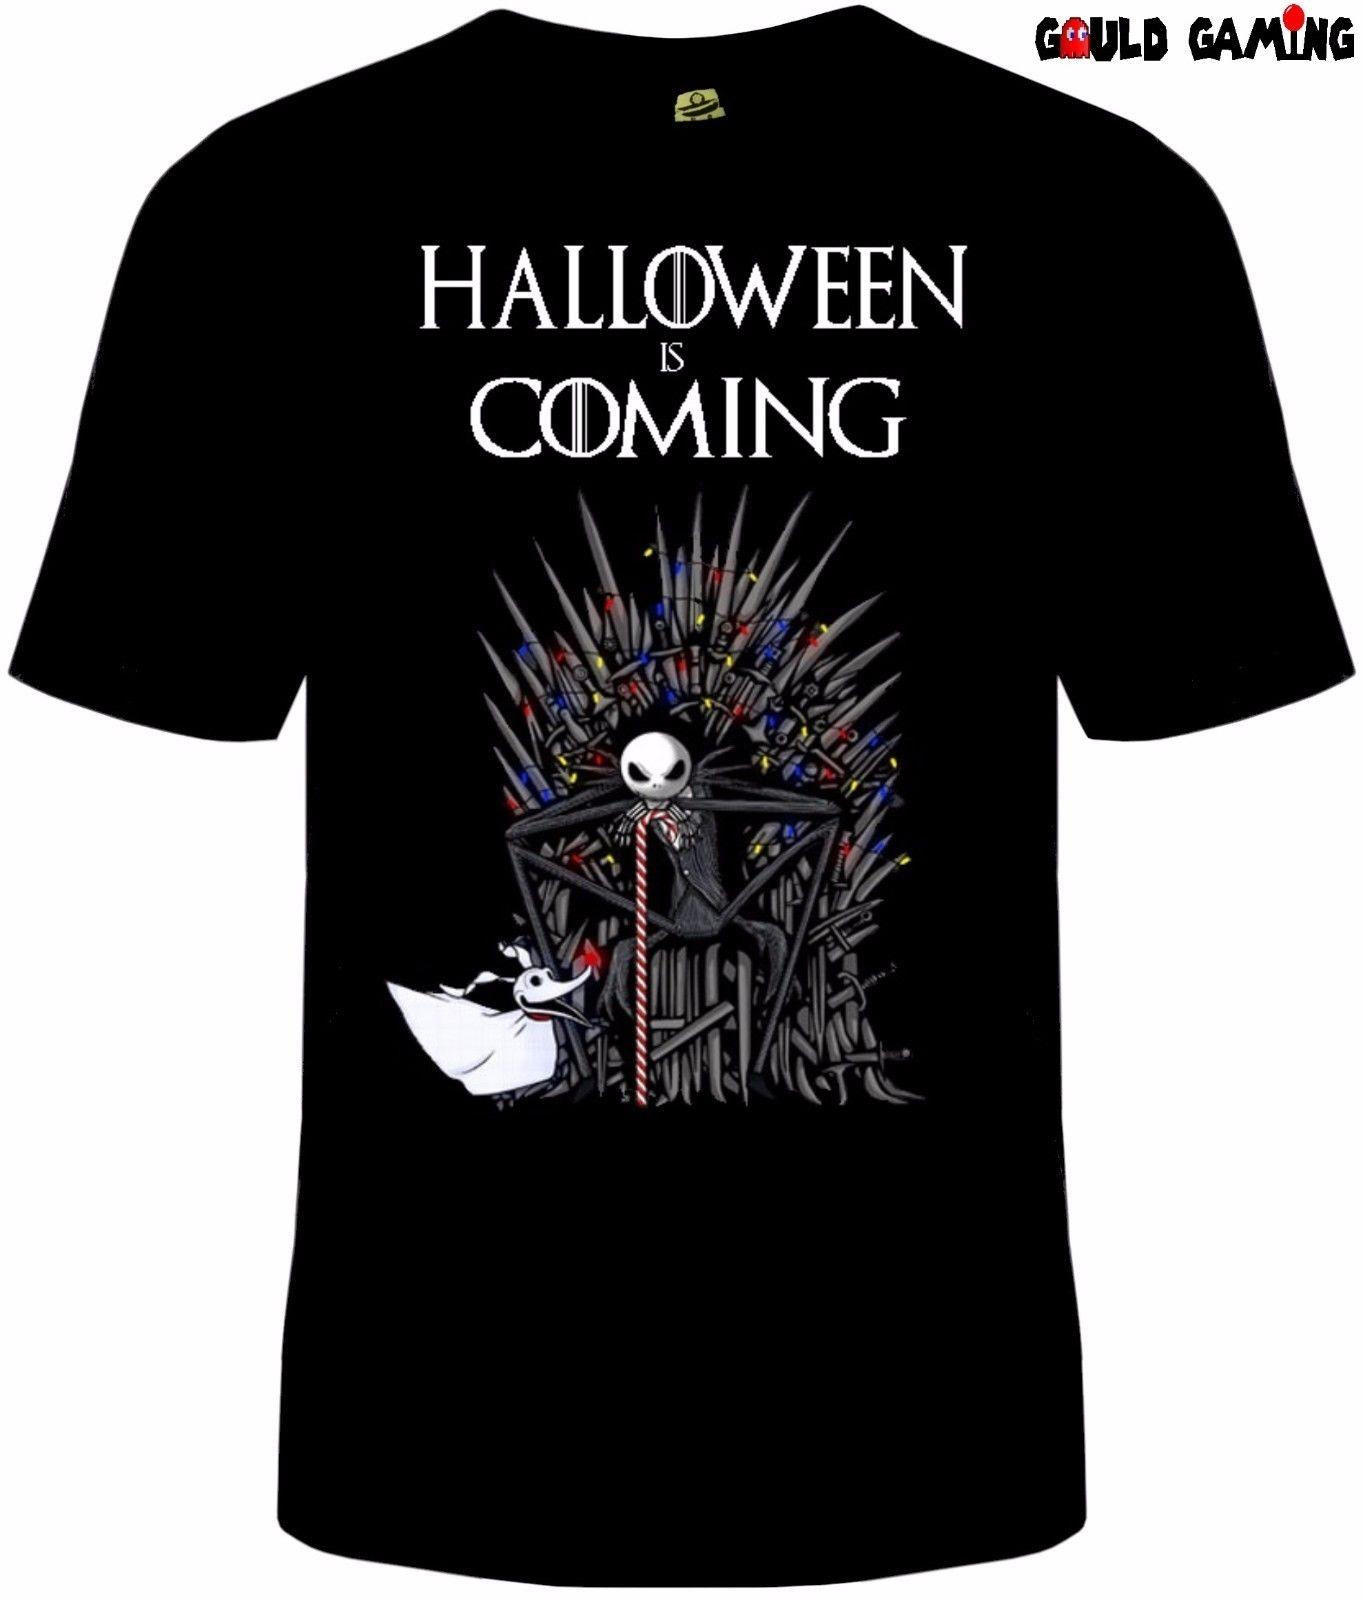 Game of Thrones Nightmare Avant Noël T-shirt Unisexe Coton Halloween Nouveau 2019 mode t-shirt De Style De Mode Hommes Tee